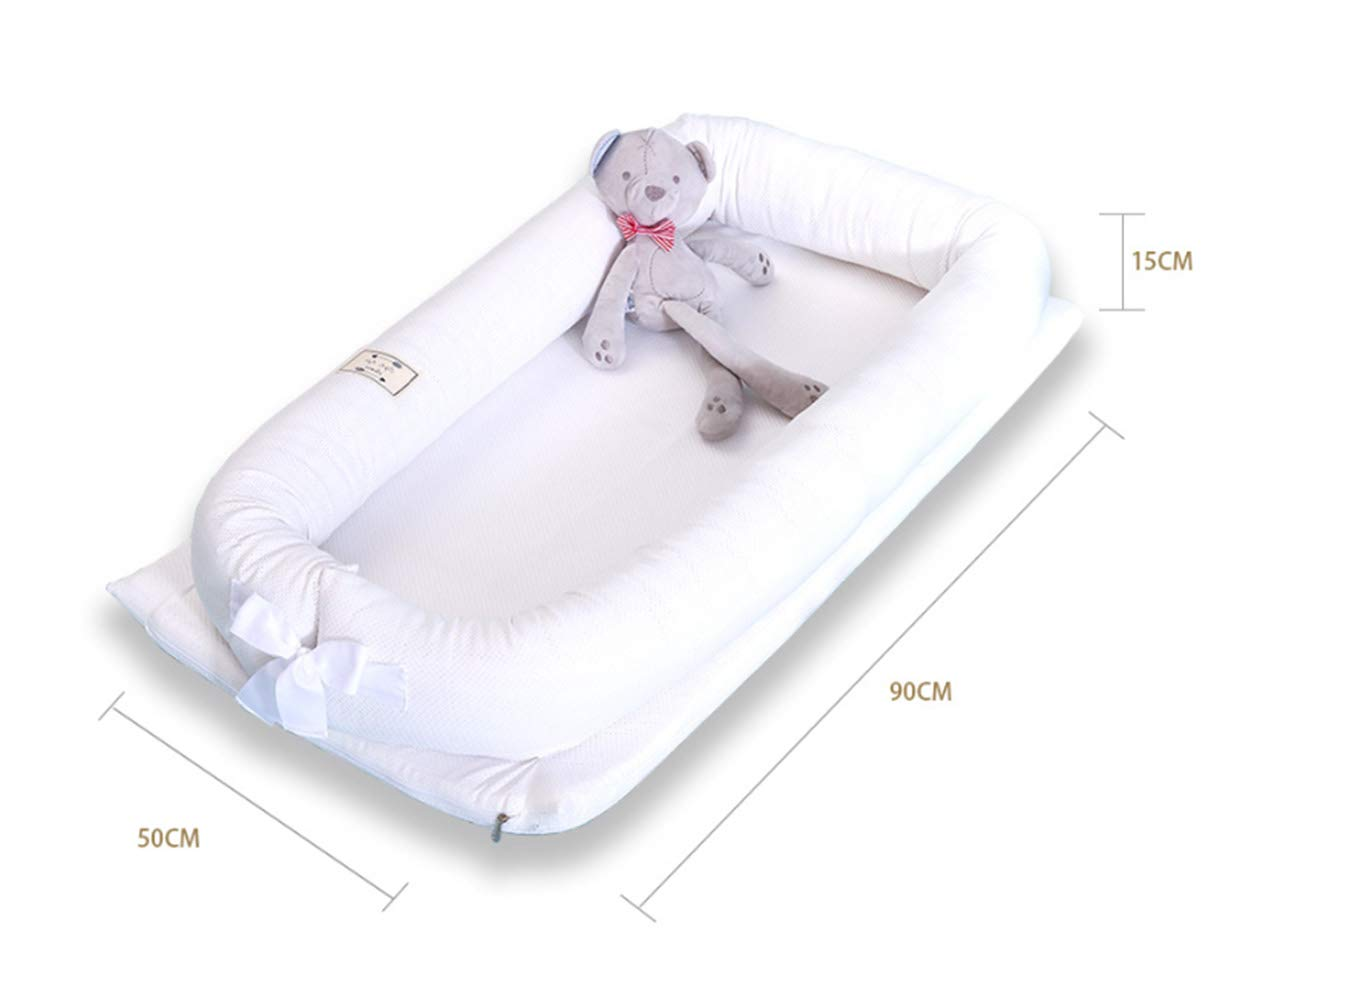 LNDD-Bionic Uterine Bed Baby Lounger 2 in 1 Sleeping Nest Pods Travel Bumpers Cradle Mattresses Suitable for Newborn Children Aged 0-1,White LNDD ★BABY COT: refreshing breathable, stretch fabric, fence protection, bionic design ★REMOVABLE: The jacket has a zipper design, and the refreshing installation is more worry-free. ★SIZE: length 99cm * width 55cm * height 15cm (suitable for 0-1 pairs of babies). 2